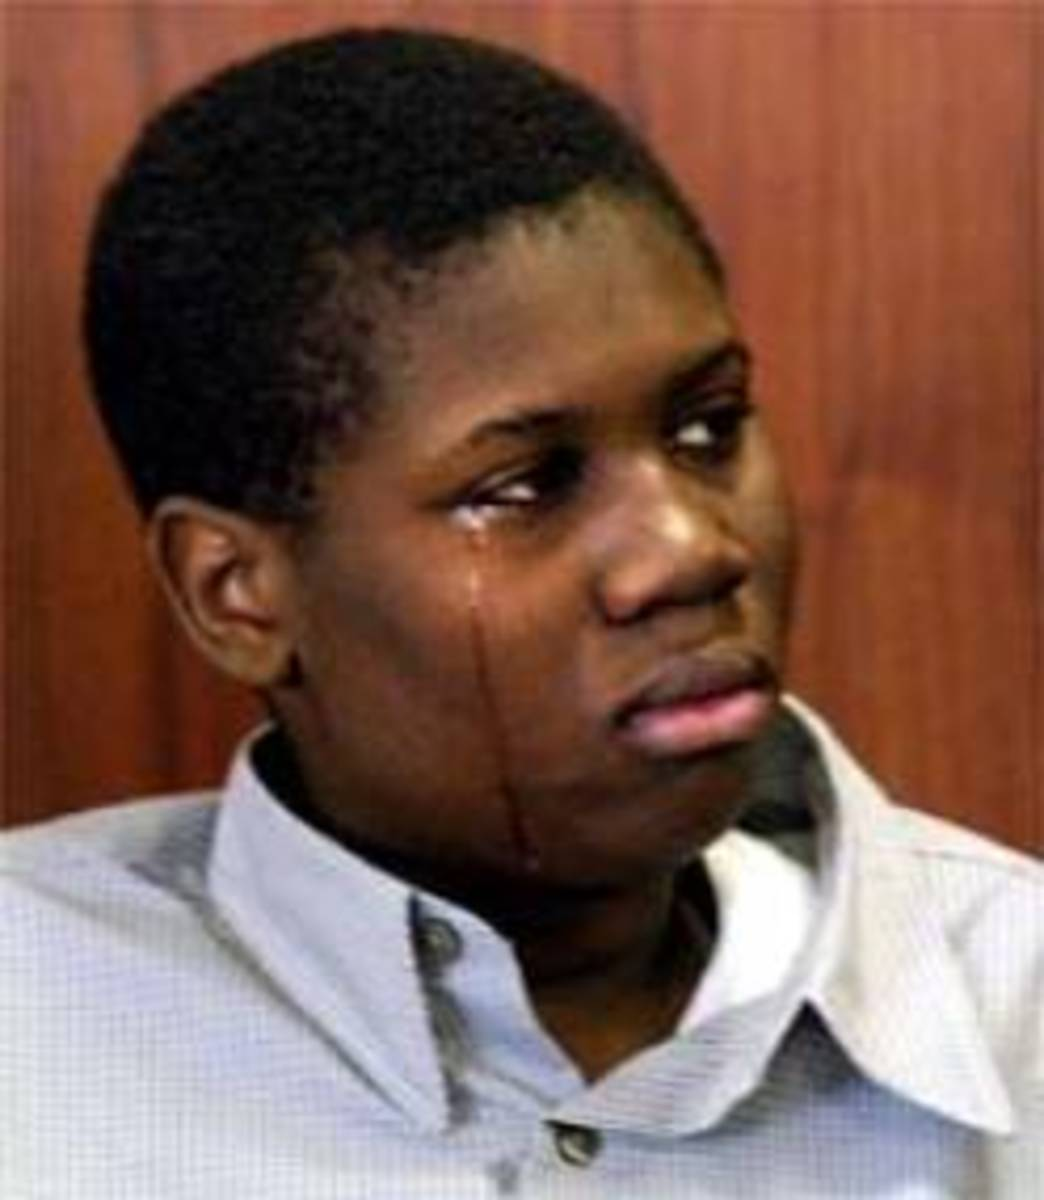 14-year-old Lionel Tate during the trial.